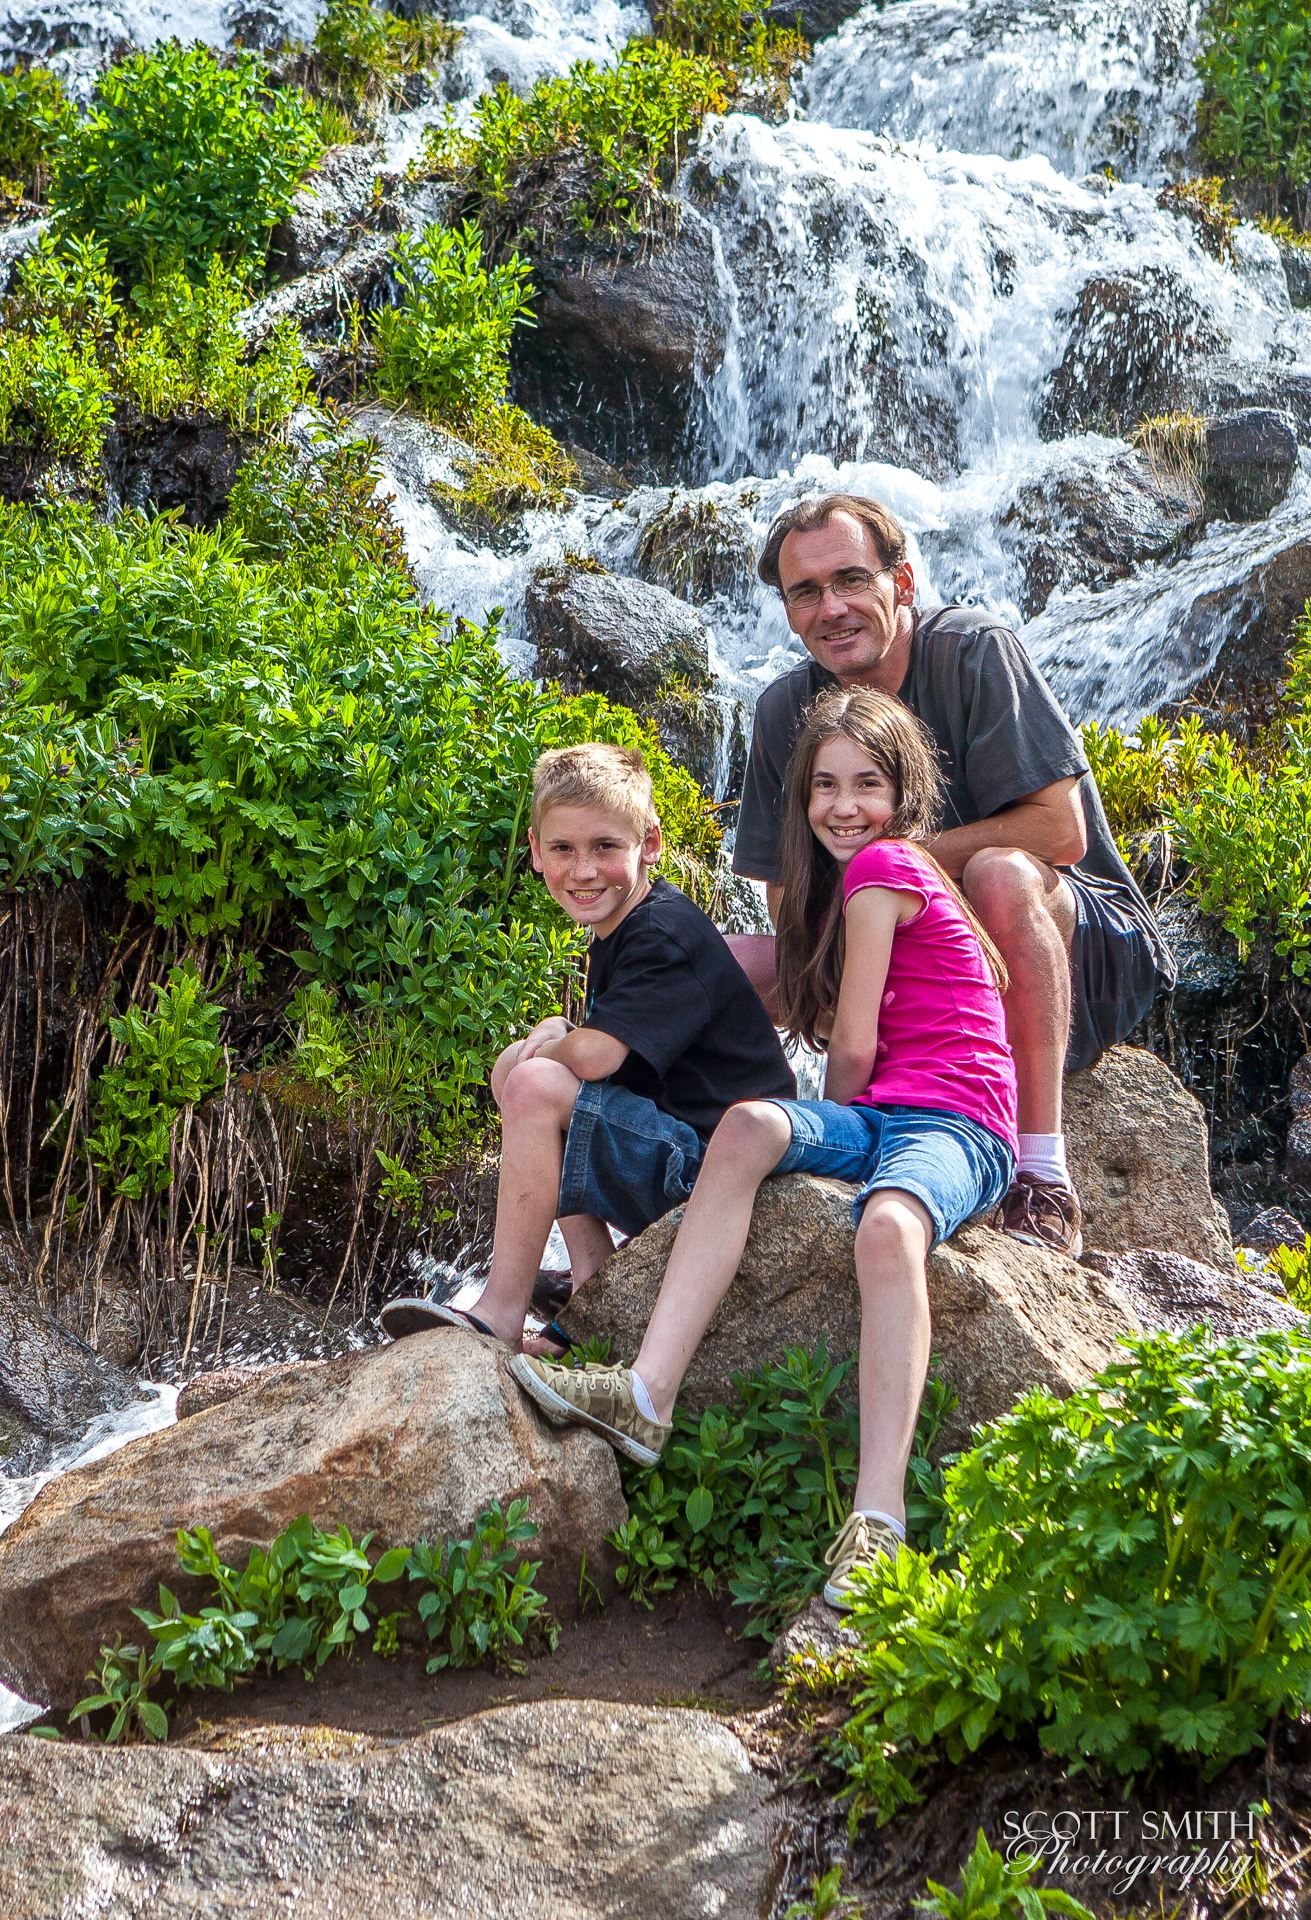 Rocky Mountain National Park Self Portrait - A self portrait of me and my children, in 2011. Shot with a wireless remote trigger. by D Scott Smith